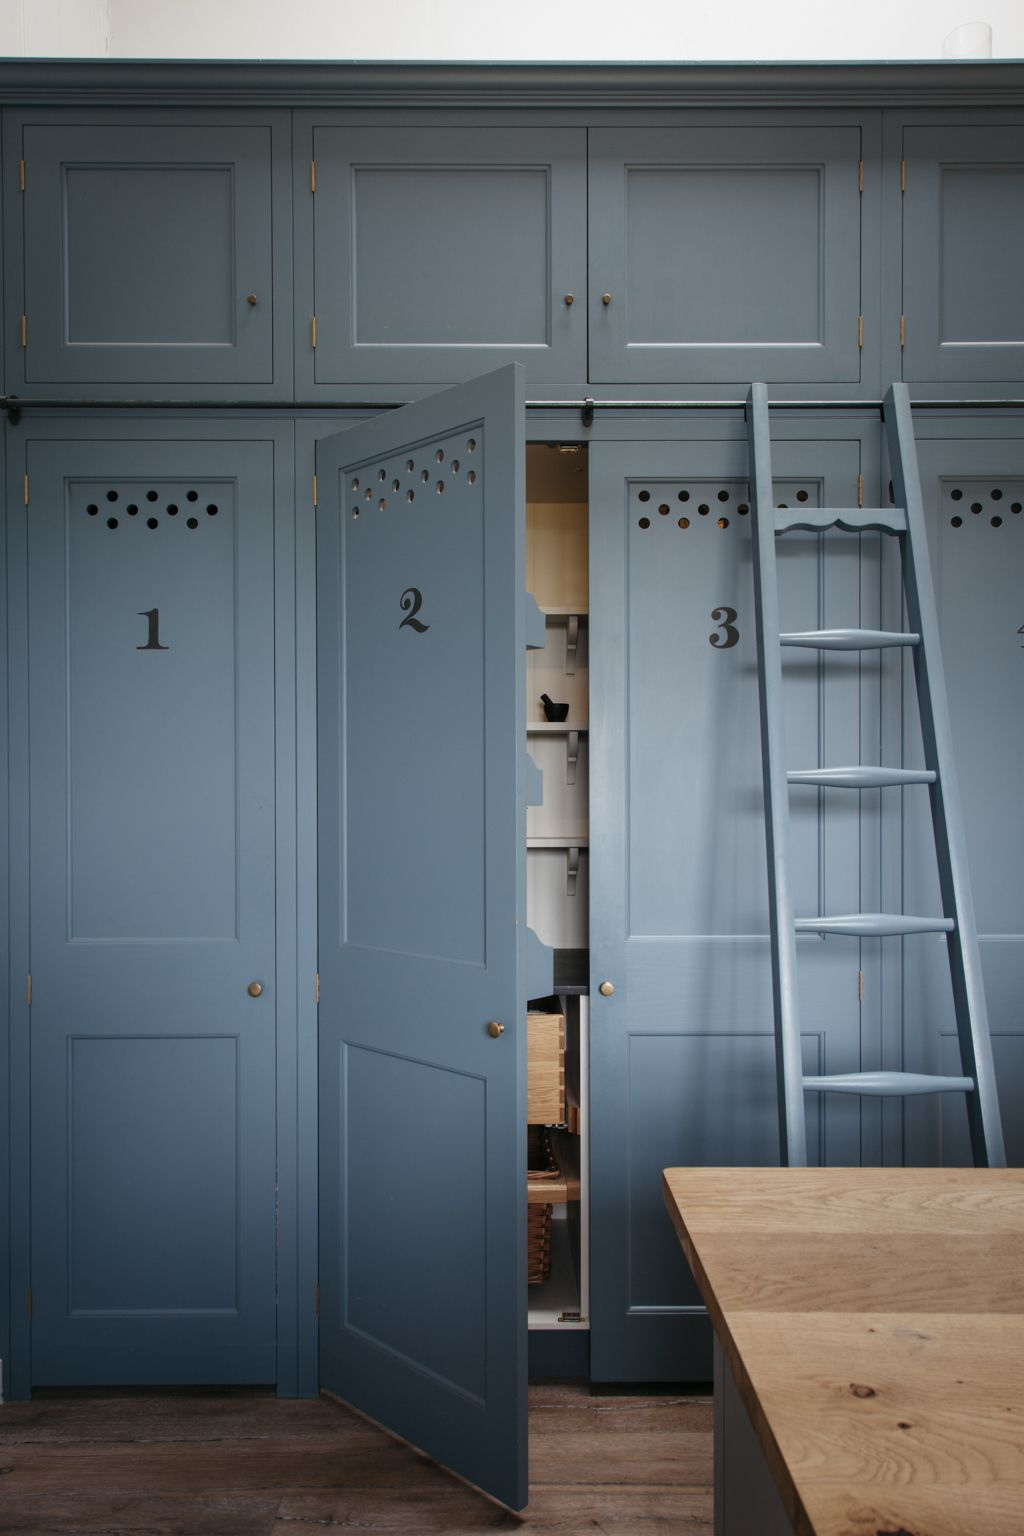 kitchen of the week the plain english power in numbers kitchen numbered kitchen cabinets with ventilation holes and a rolling ladder in a dorset farmhouse kitchen by